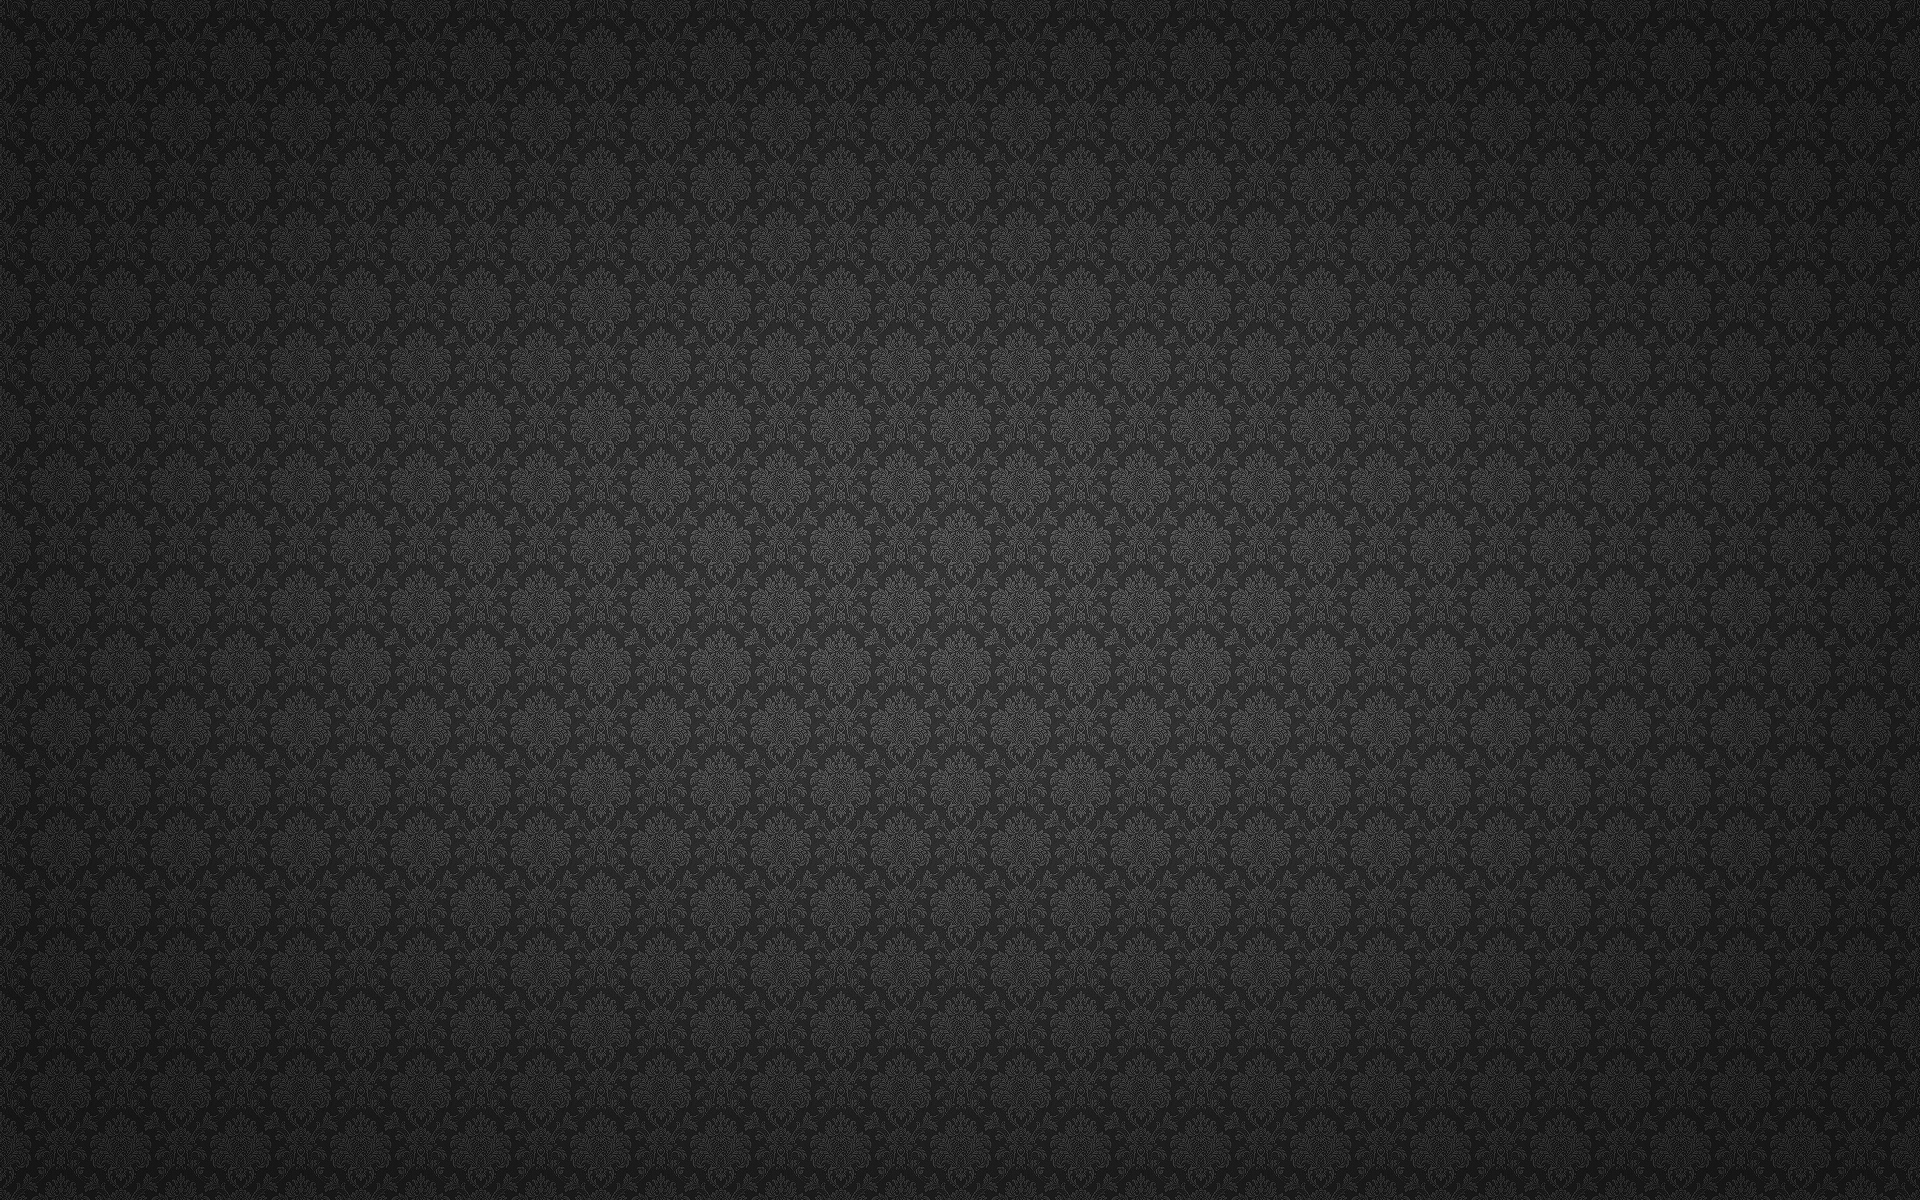 Black Wall Paper Decor : Hd black wallpapers